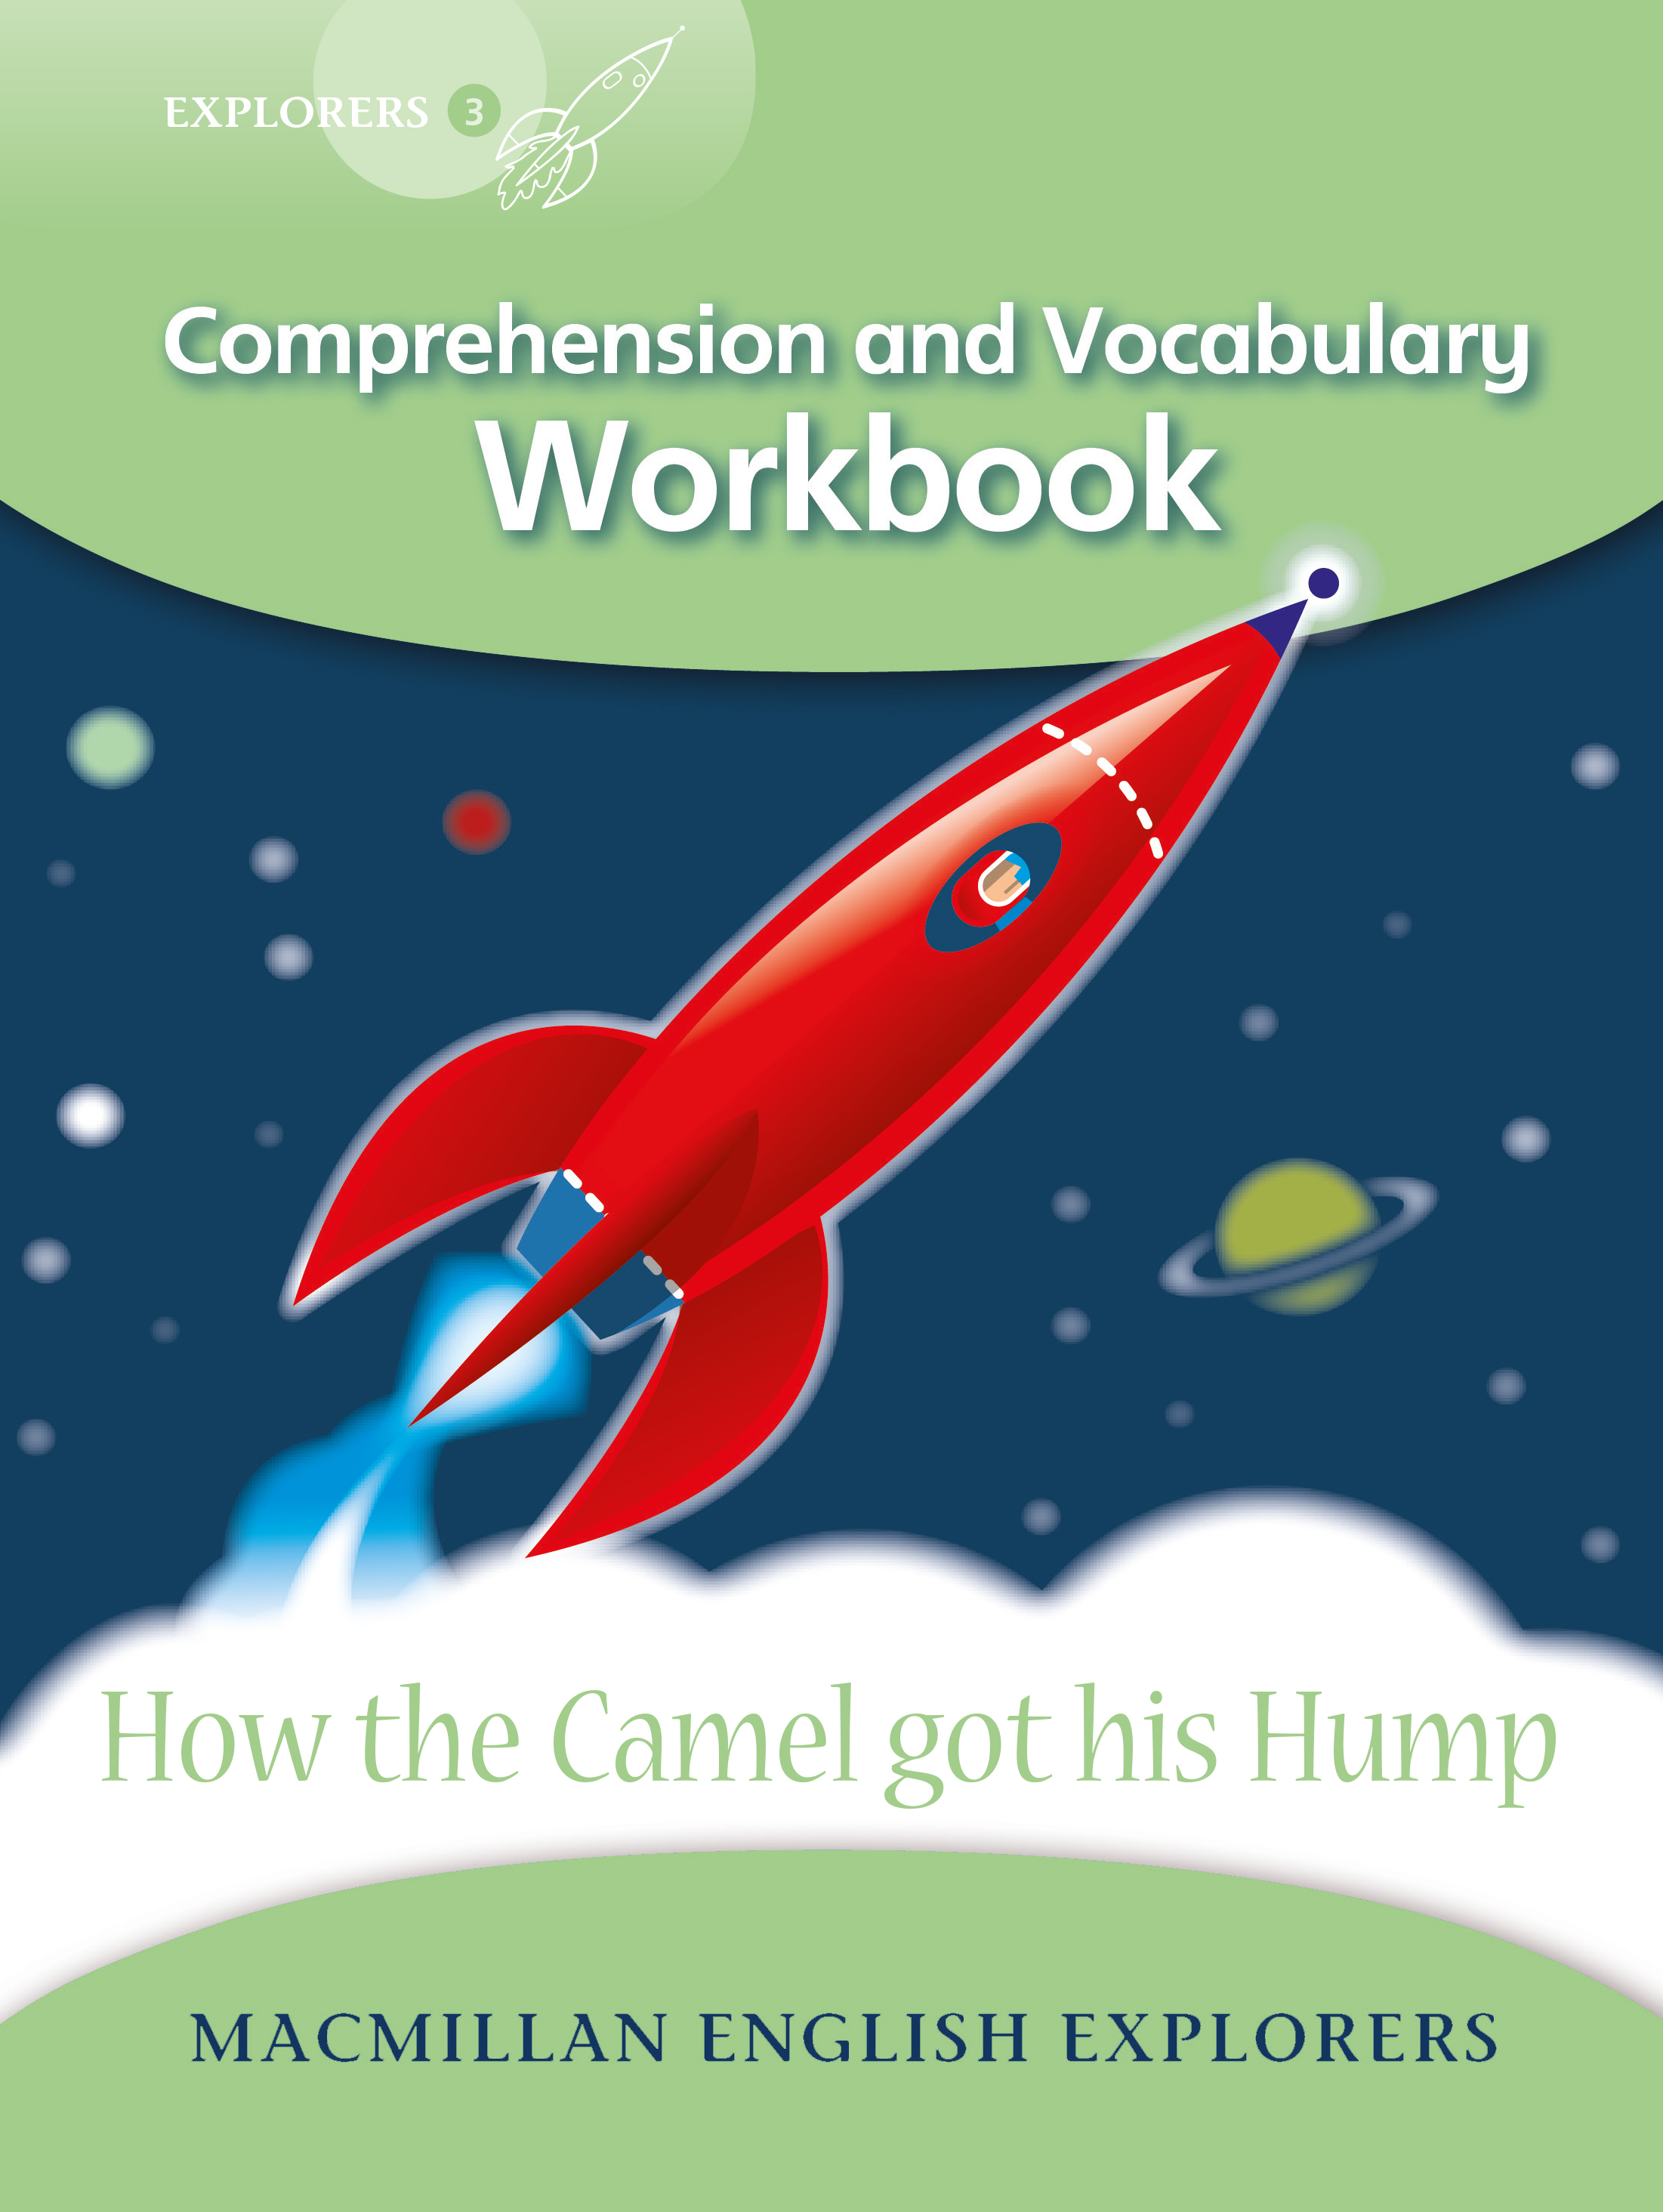 Explorers 3: How the Camel Got His Hump Workbook